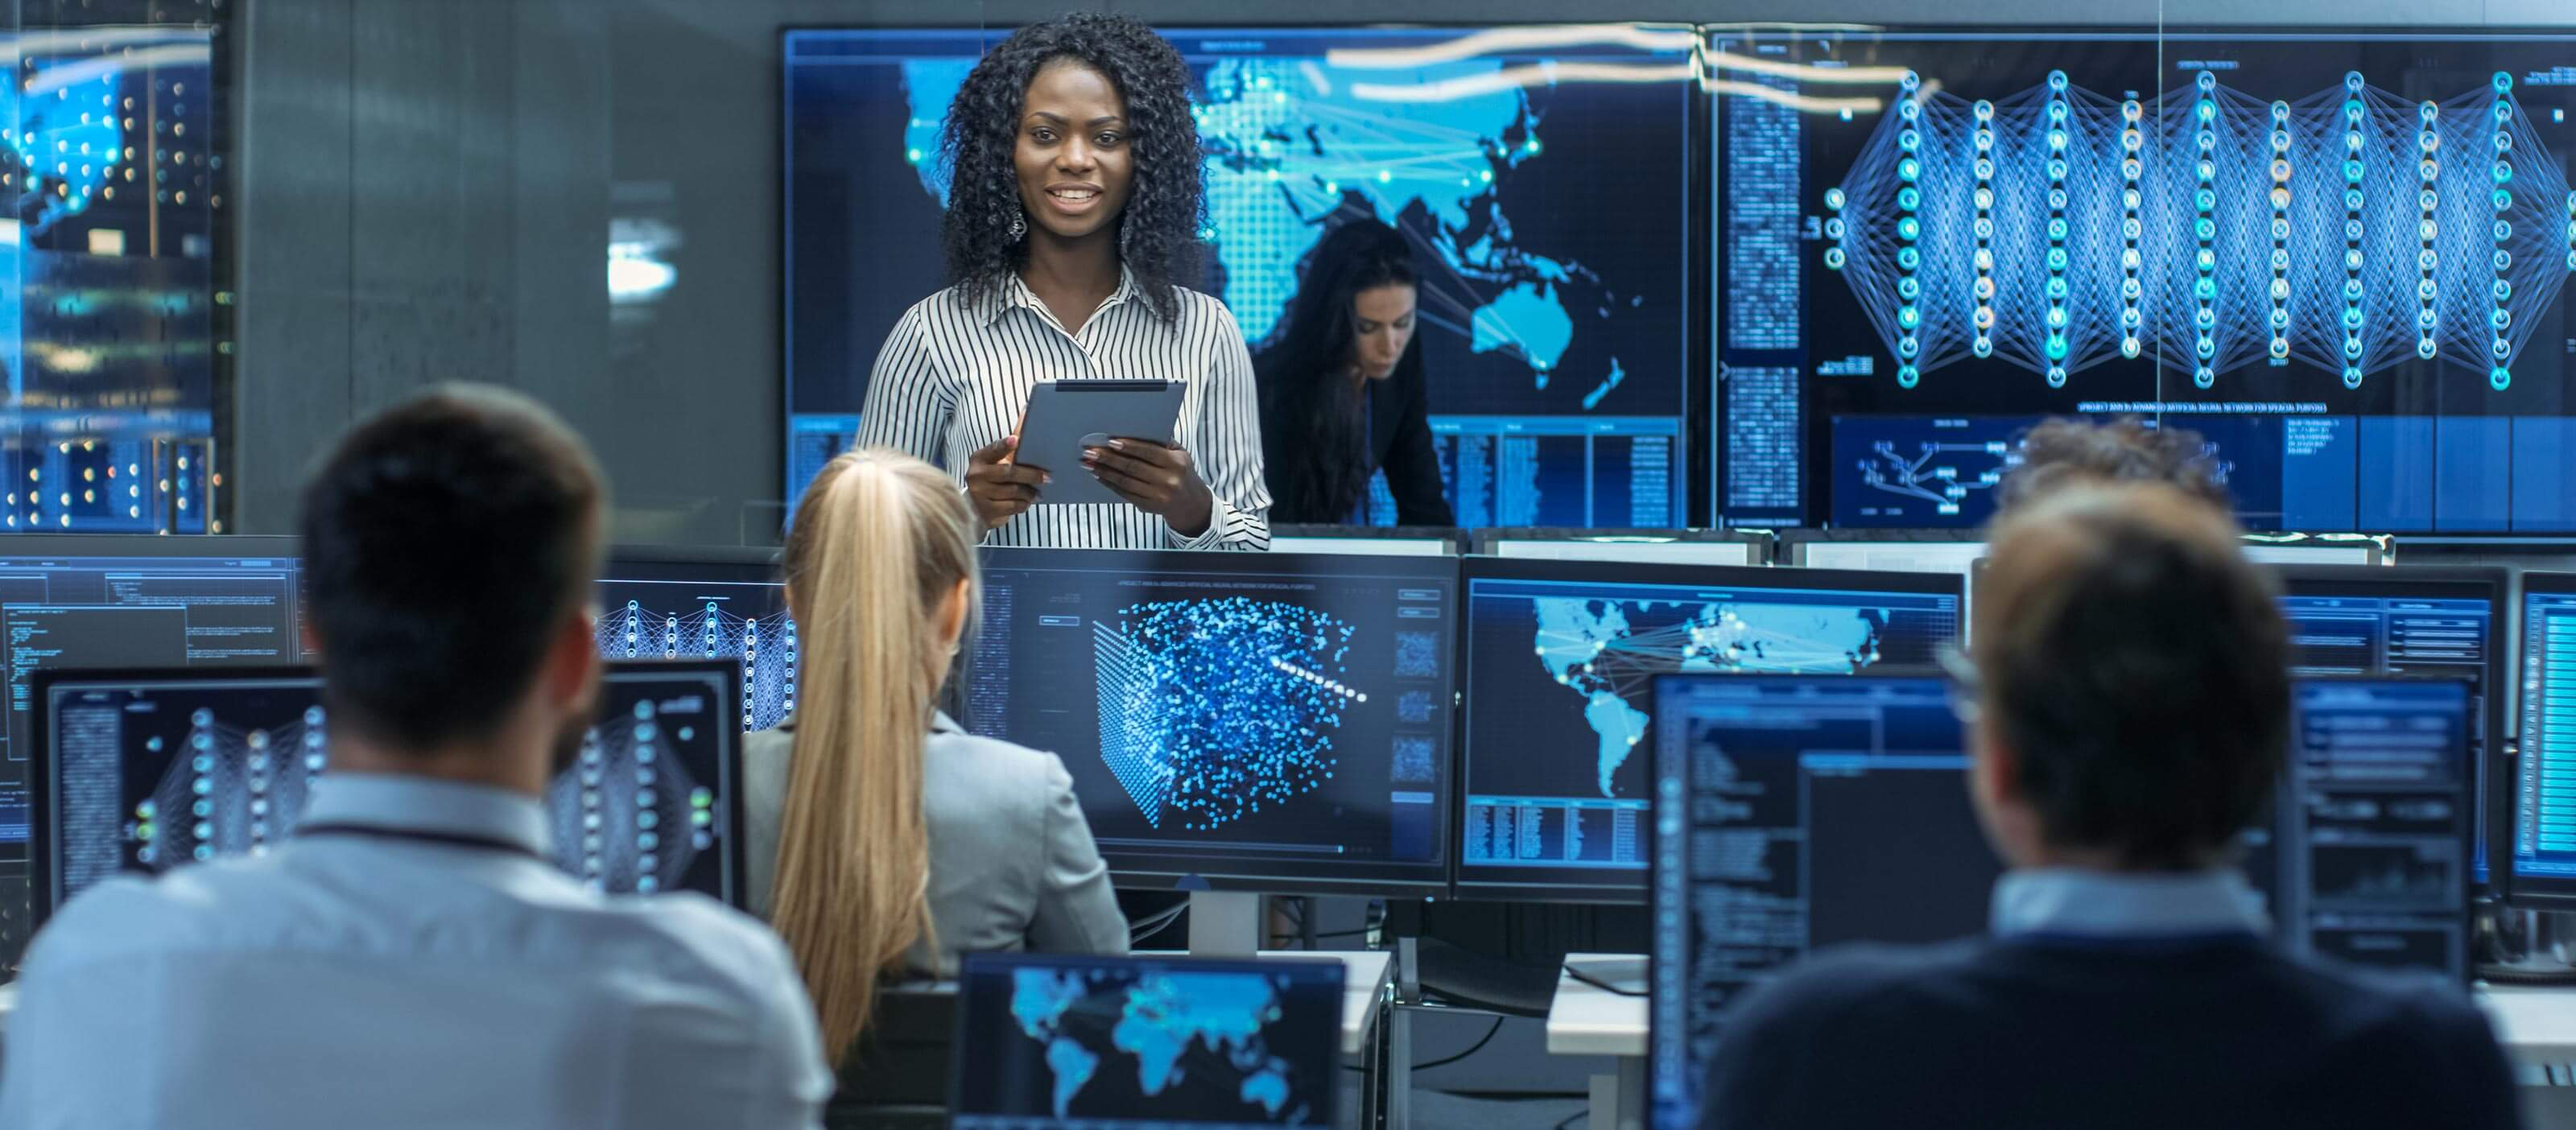 cyber security services provided by GE Digital